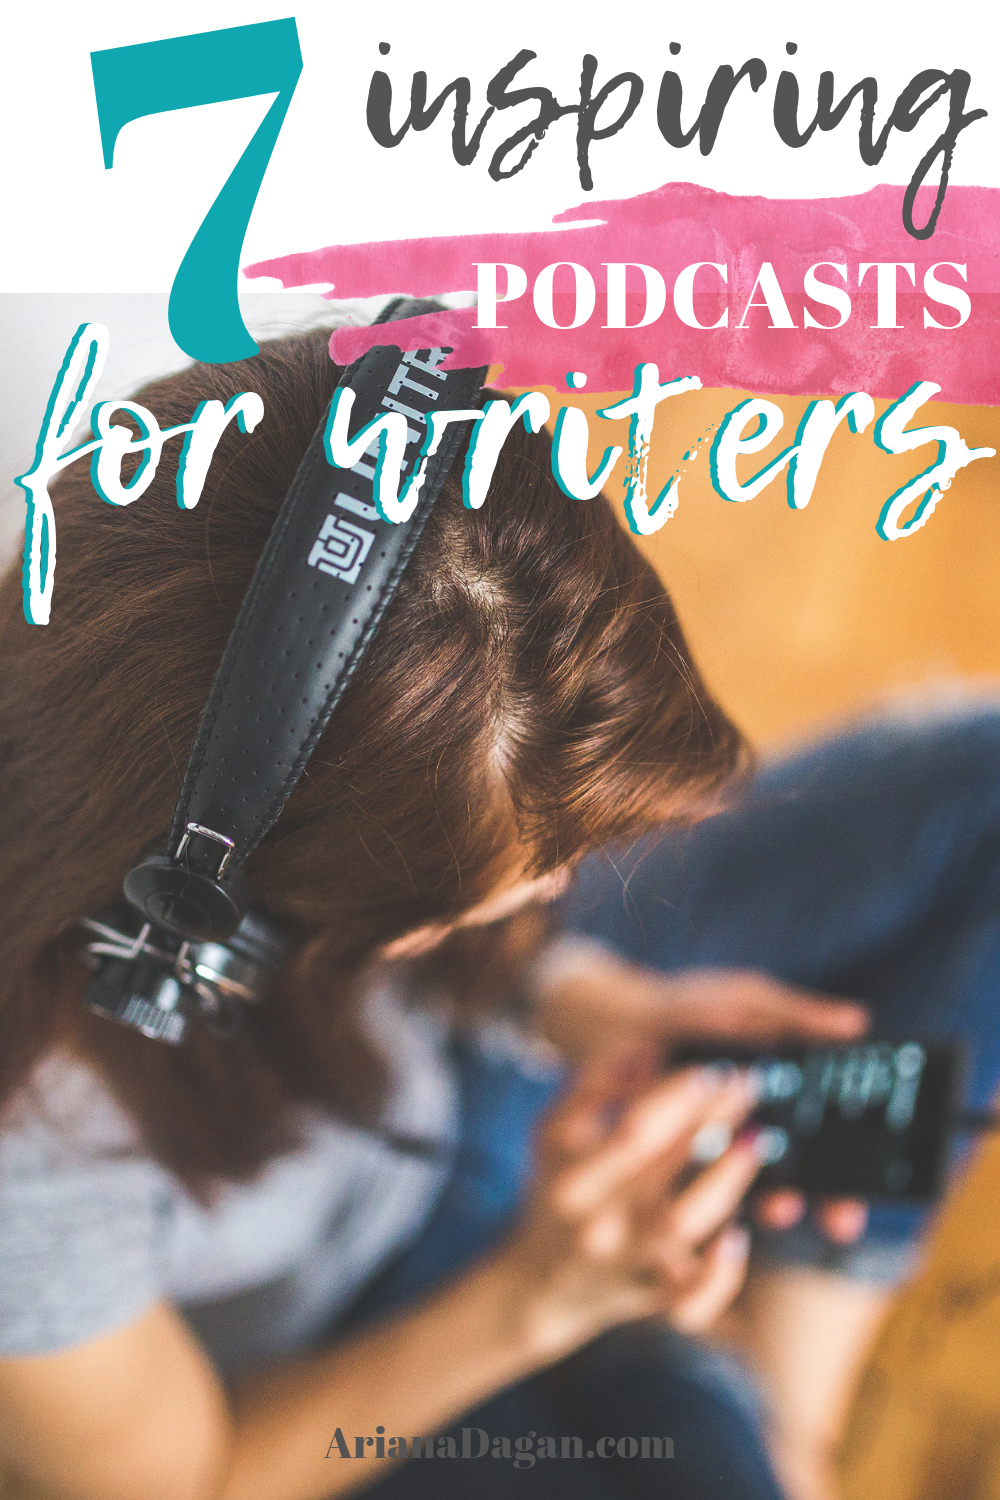 7 Inspiring Podcasts for writers by ariana dagan